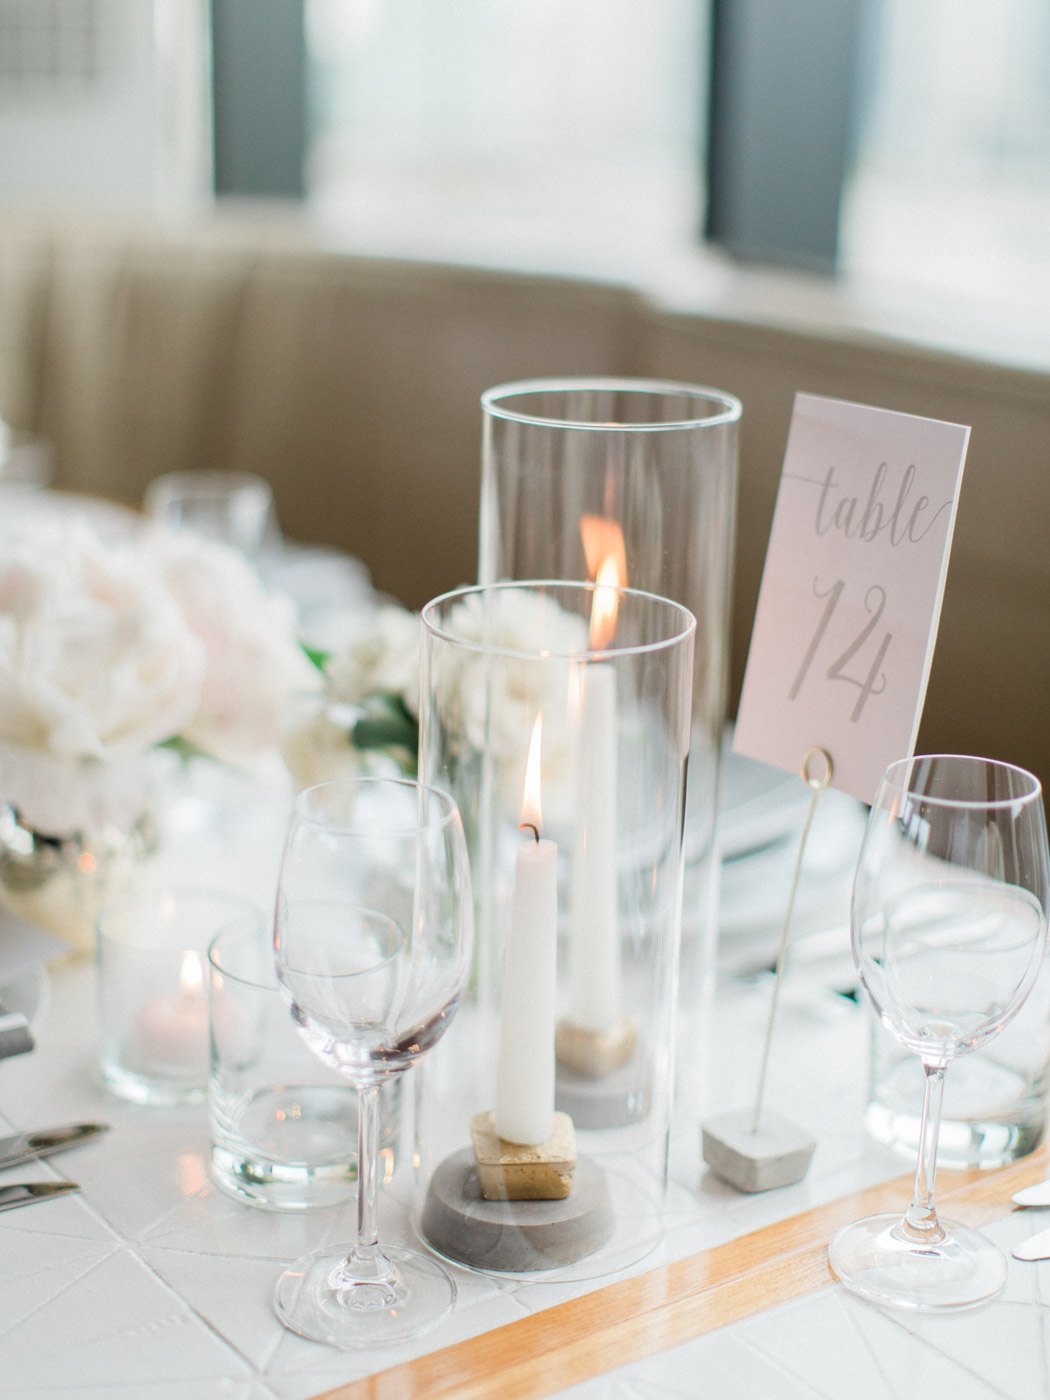 -	Vogue inspired fine art wedding details at Lavelle Restaurant, downtown toronto.  Captured by Toronto wedding photographer Corynn Fowler Photography.